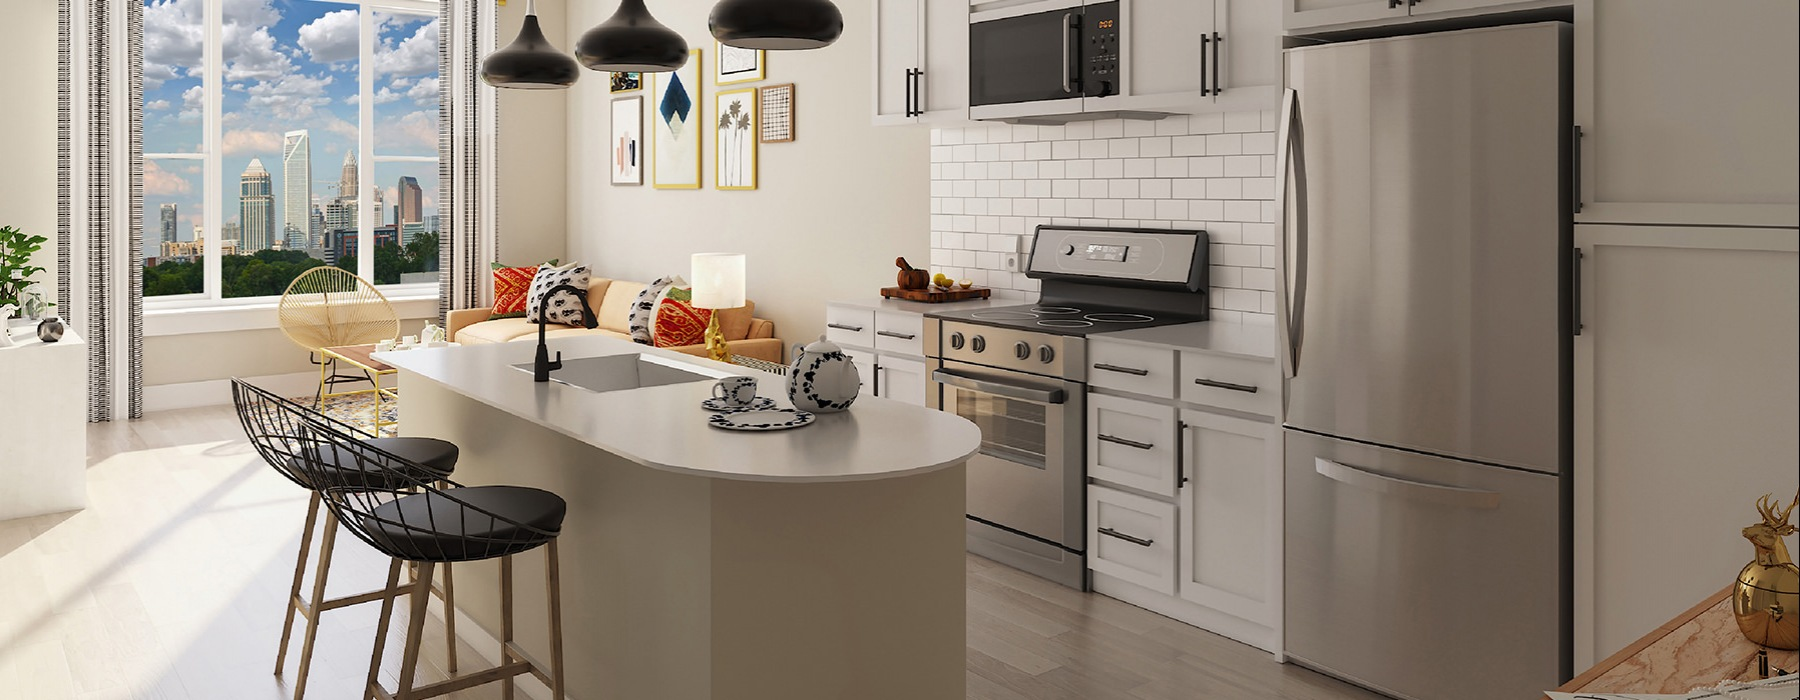 rendering of kitchen with large window and tile backsplash